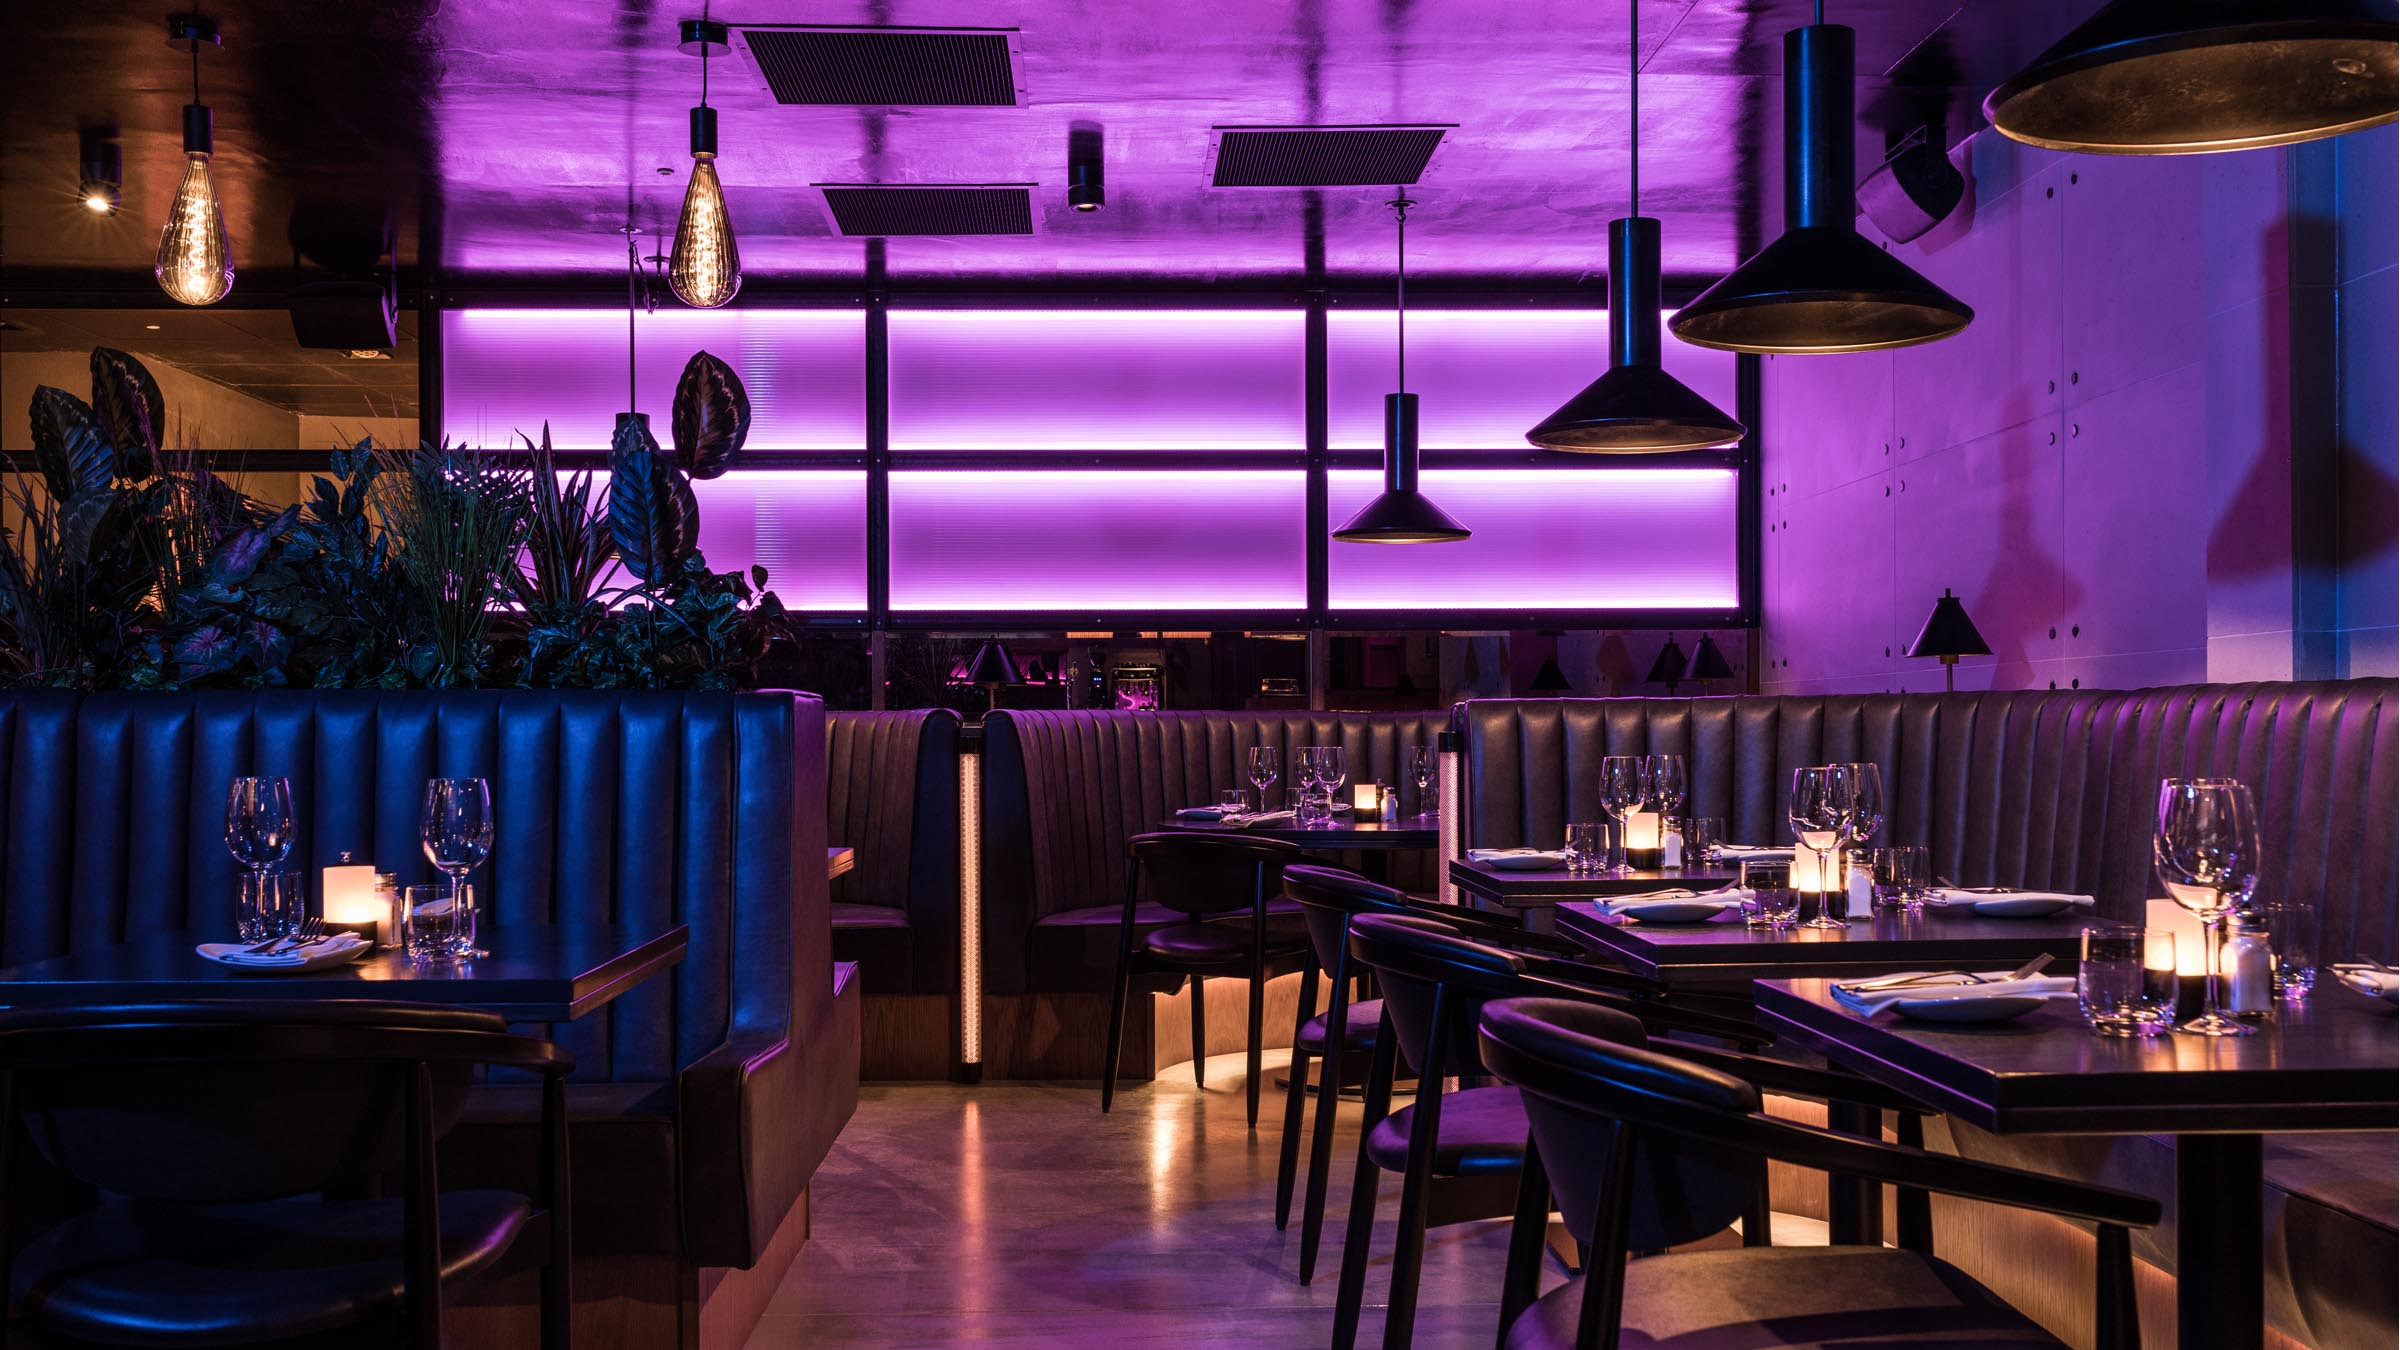 Mosaic's design for Glasgow restaurant is 'so L.A.